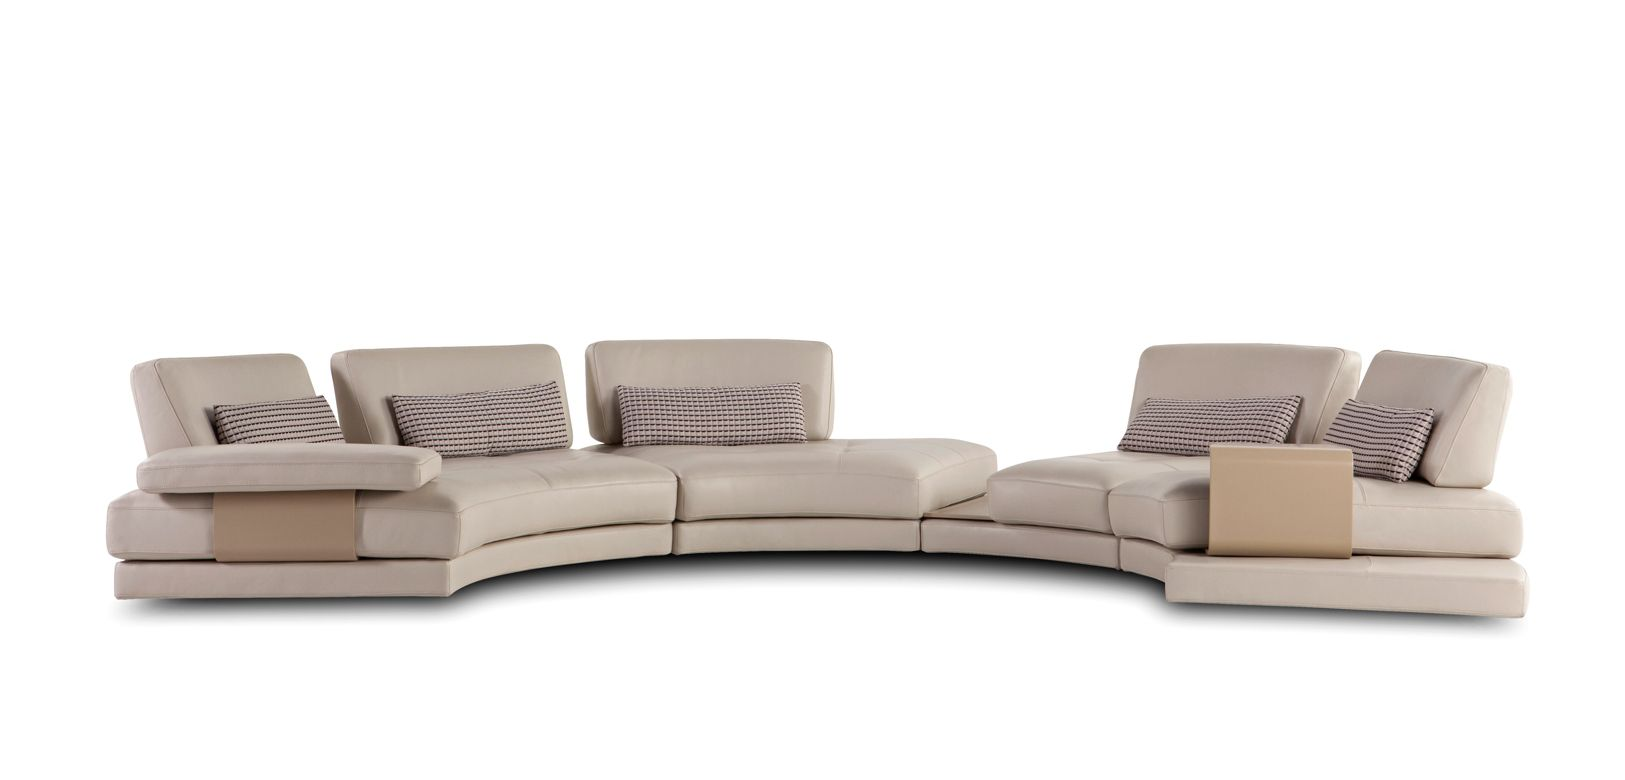 Beach Bay Panoramic Sectional Roche Bobois